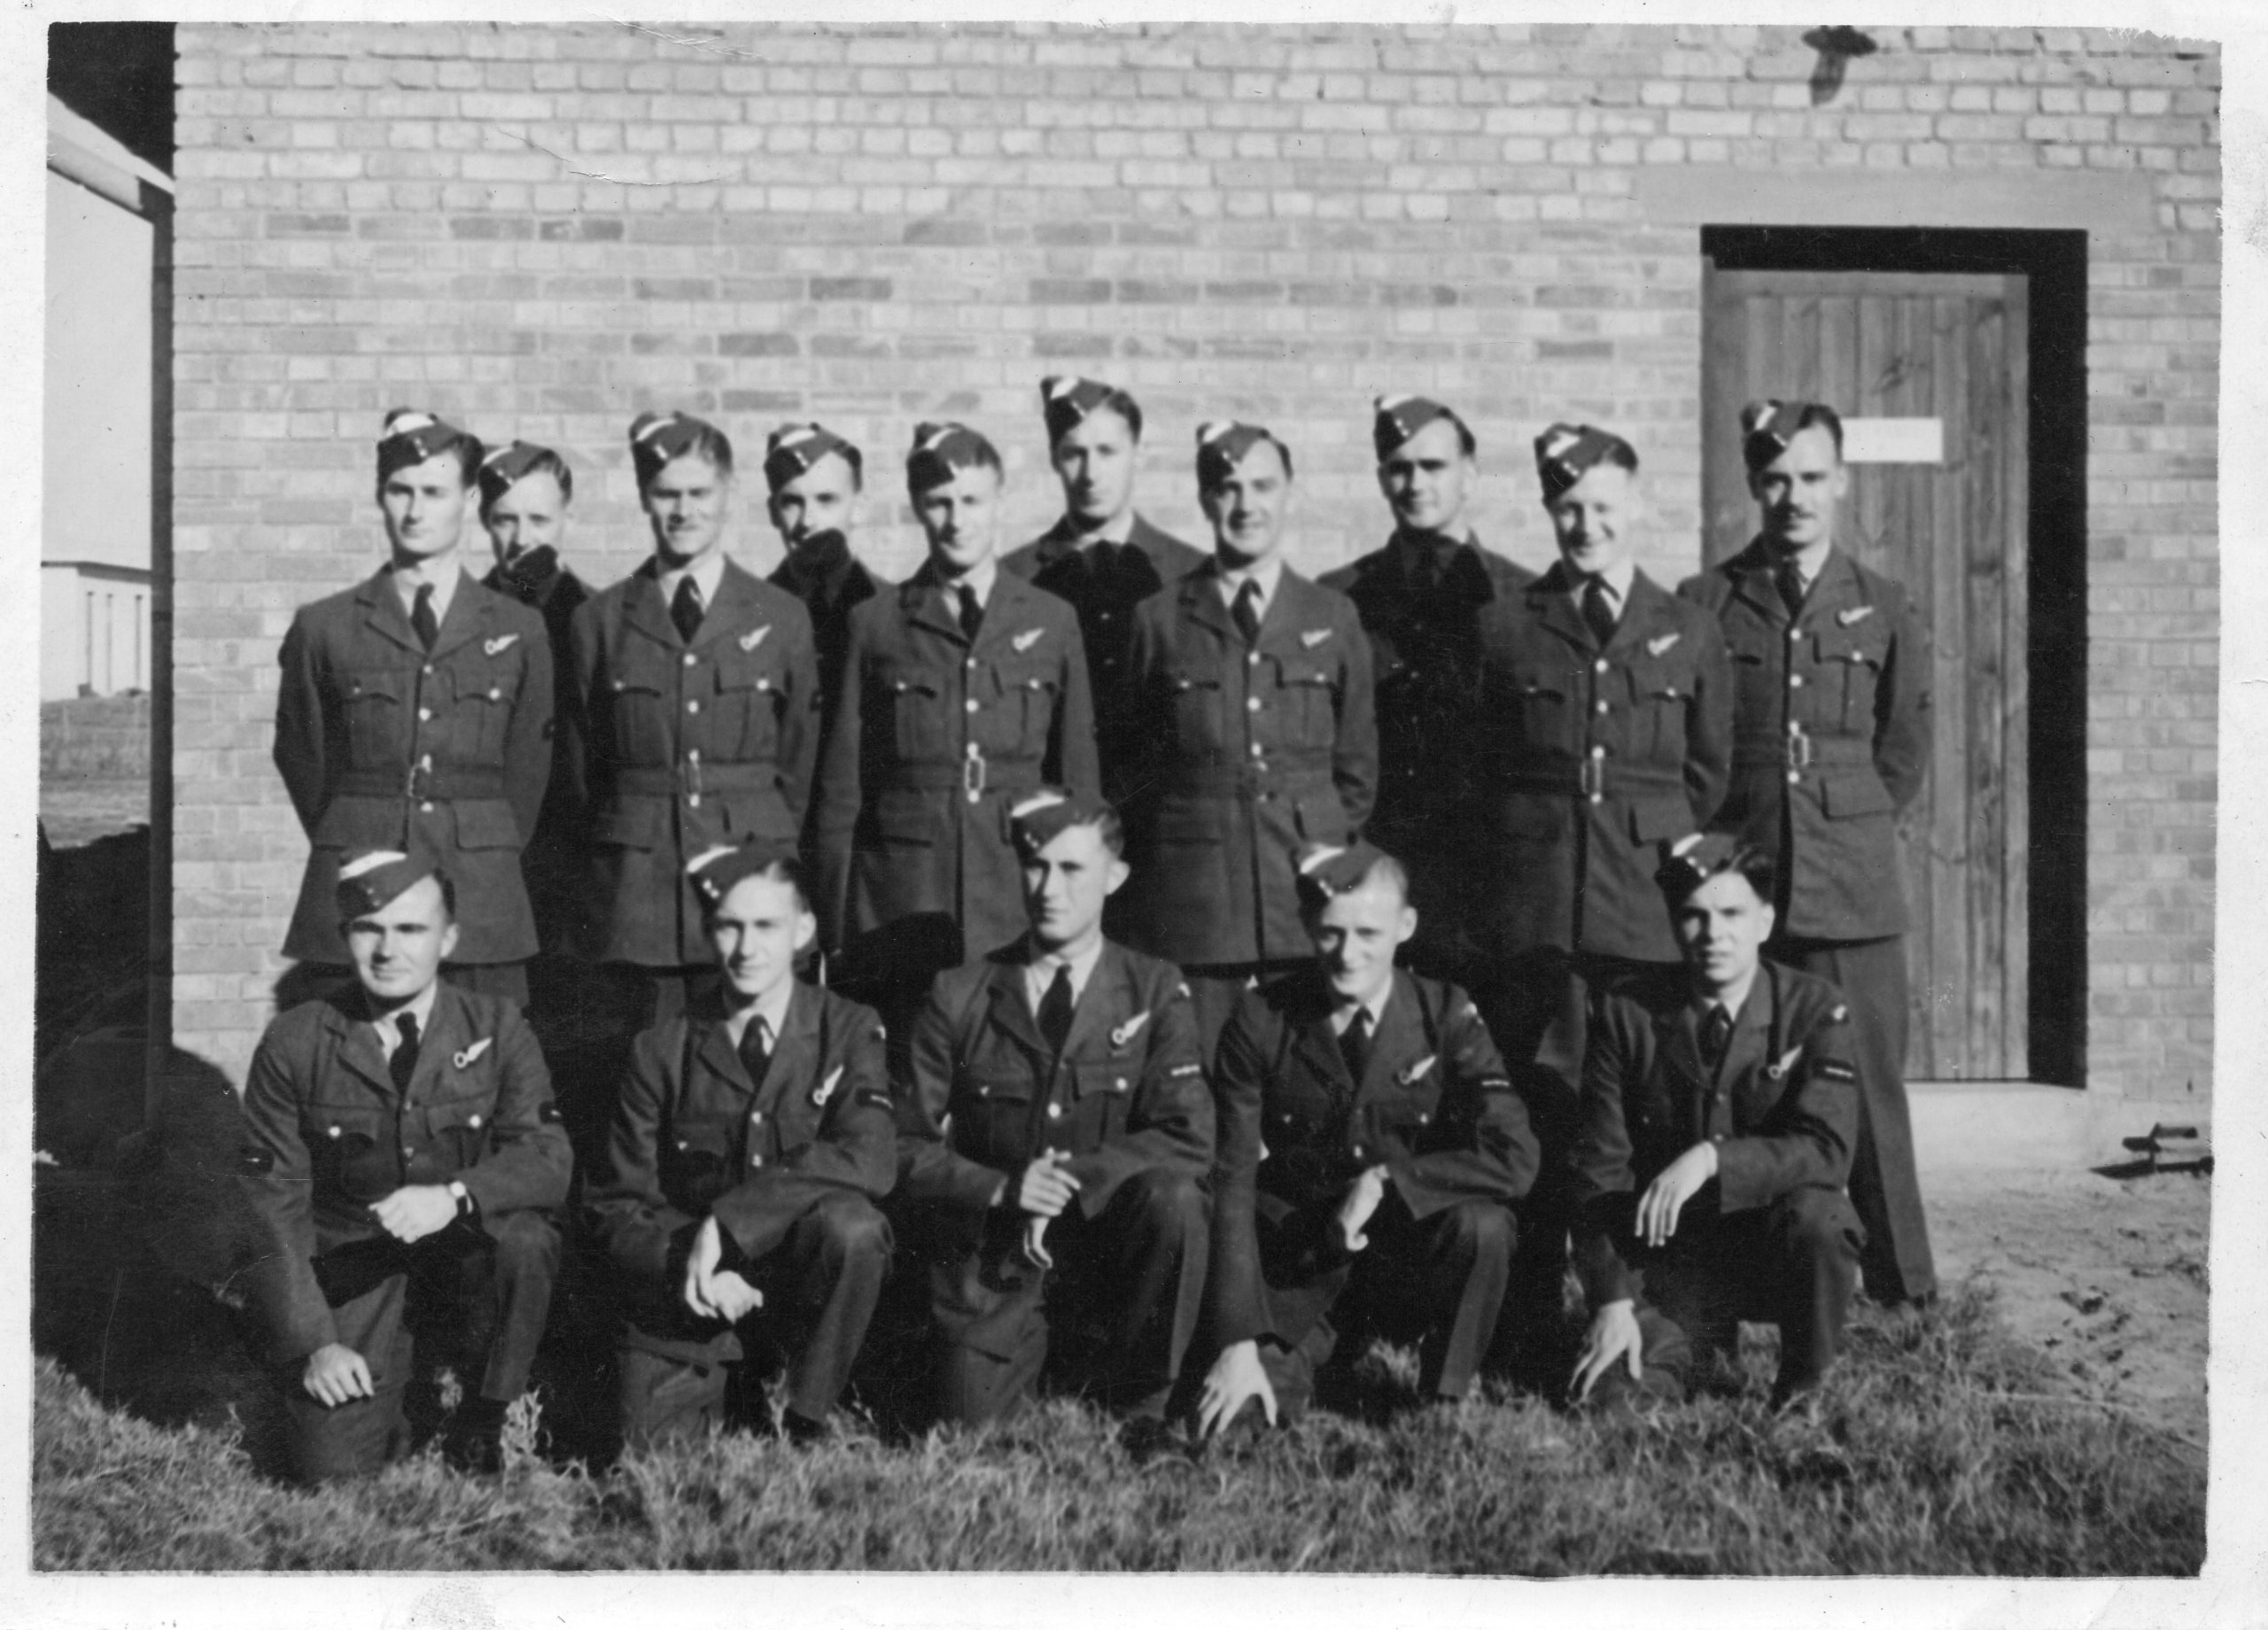 Group of 15 airmen, J C McGhee, front, 2nd from left